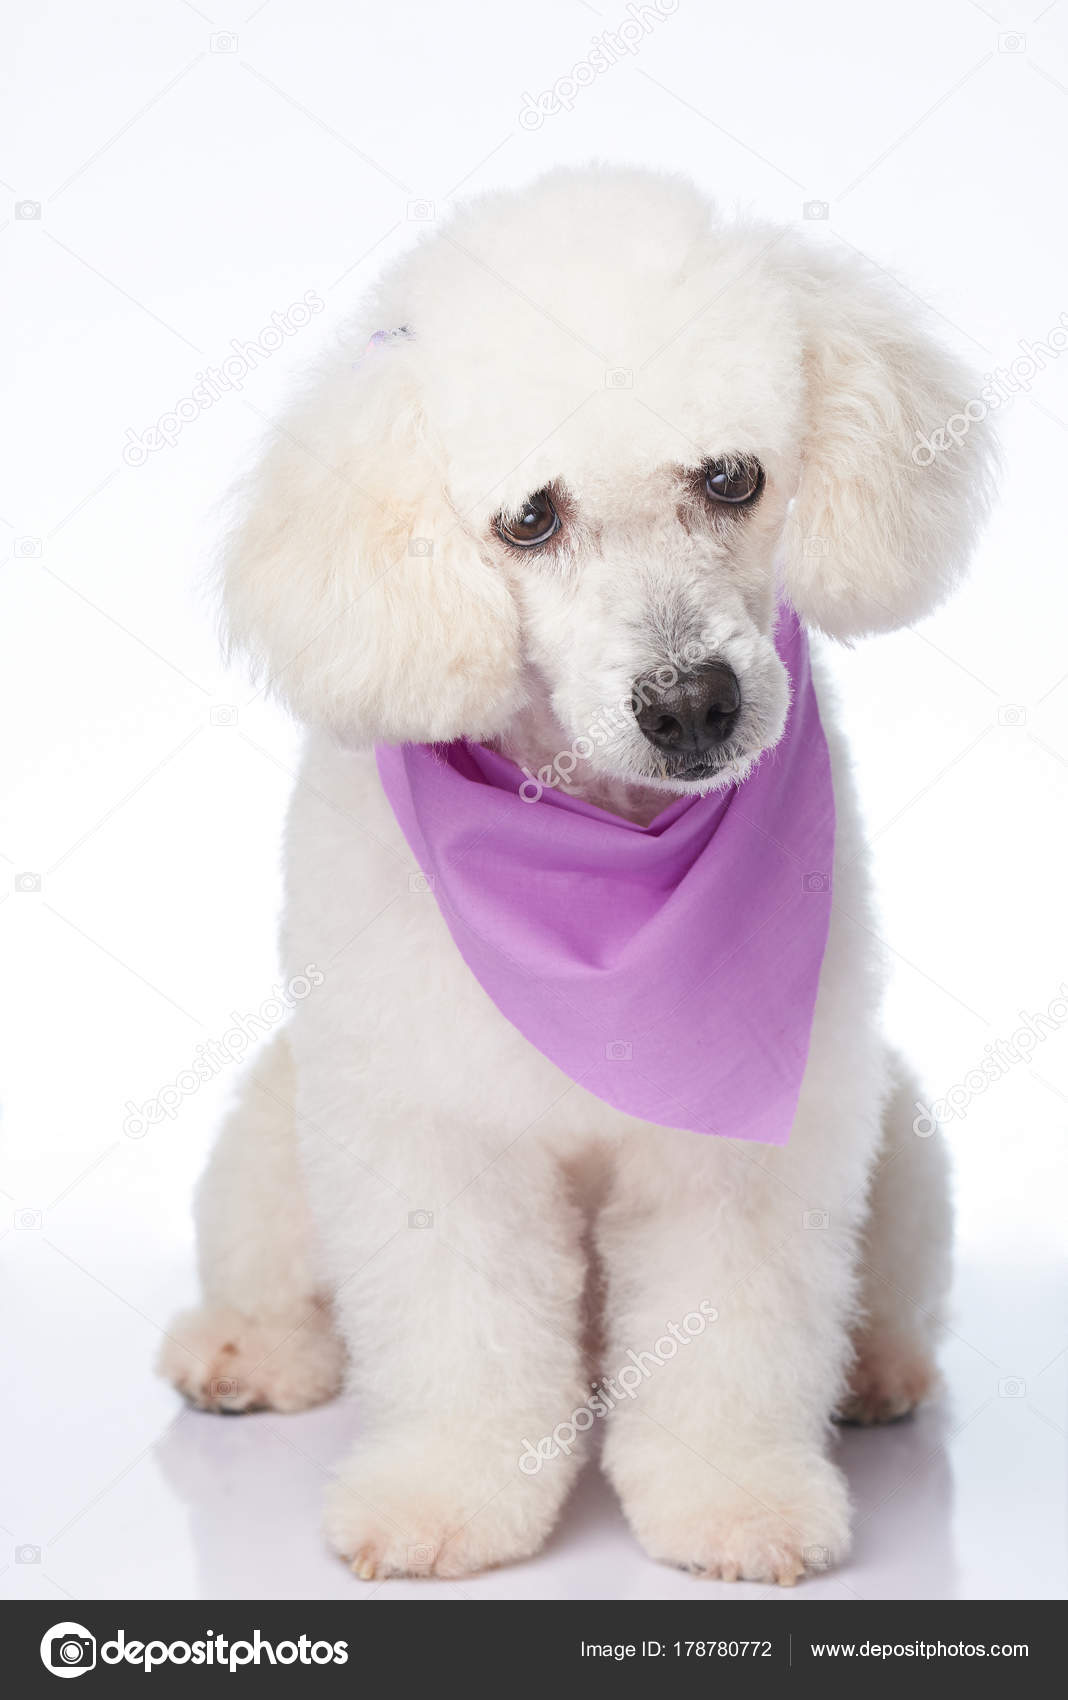 Phenomenal Cute Poodle Hairstyles Sitting Cute White Poodle Dog Stock Natural Hairstyles Runnerswayorg